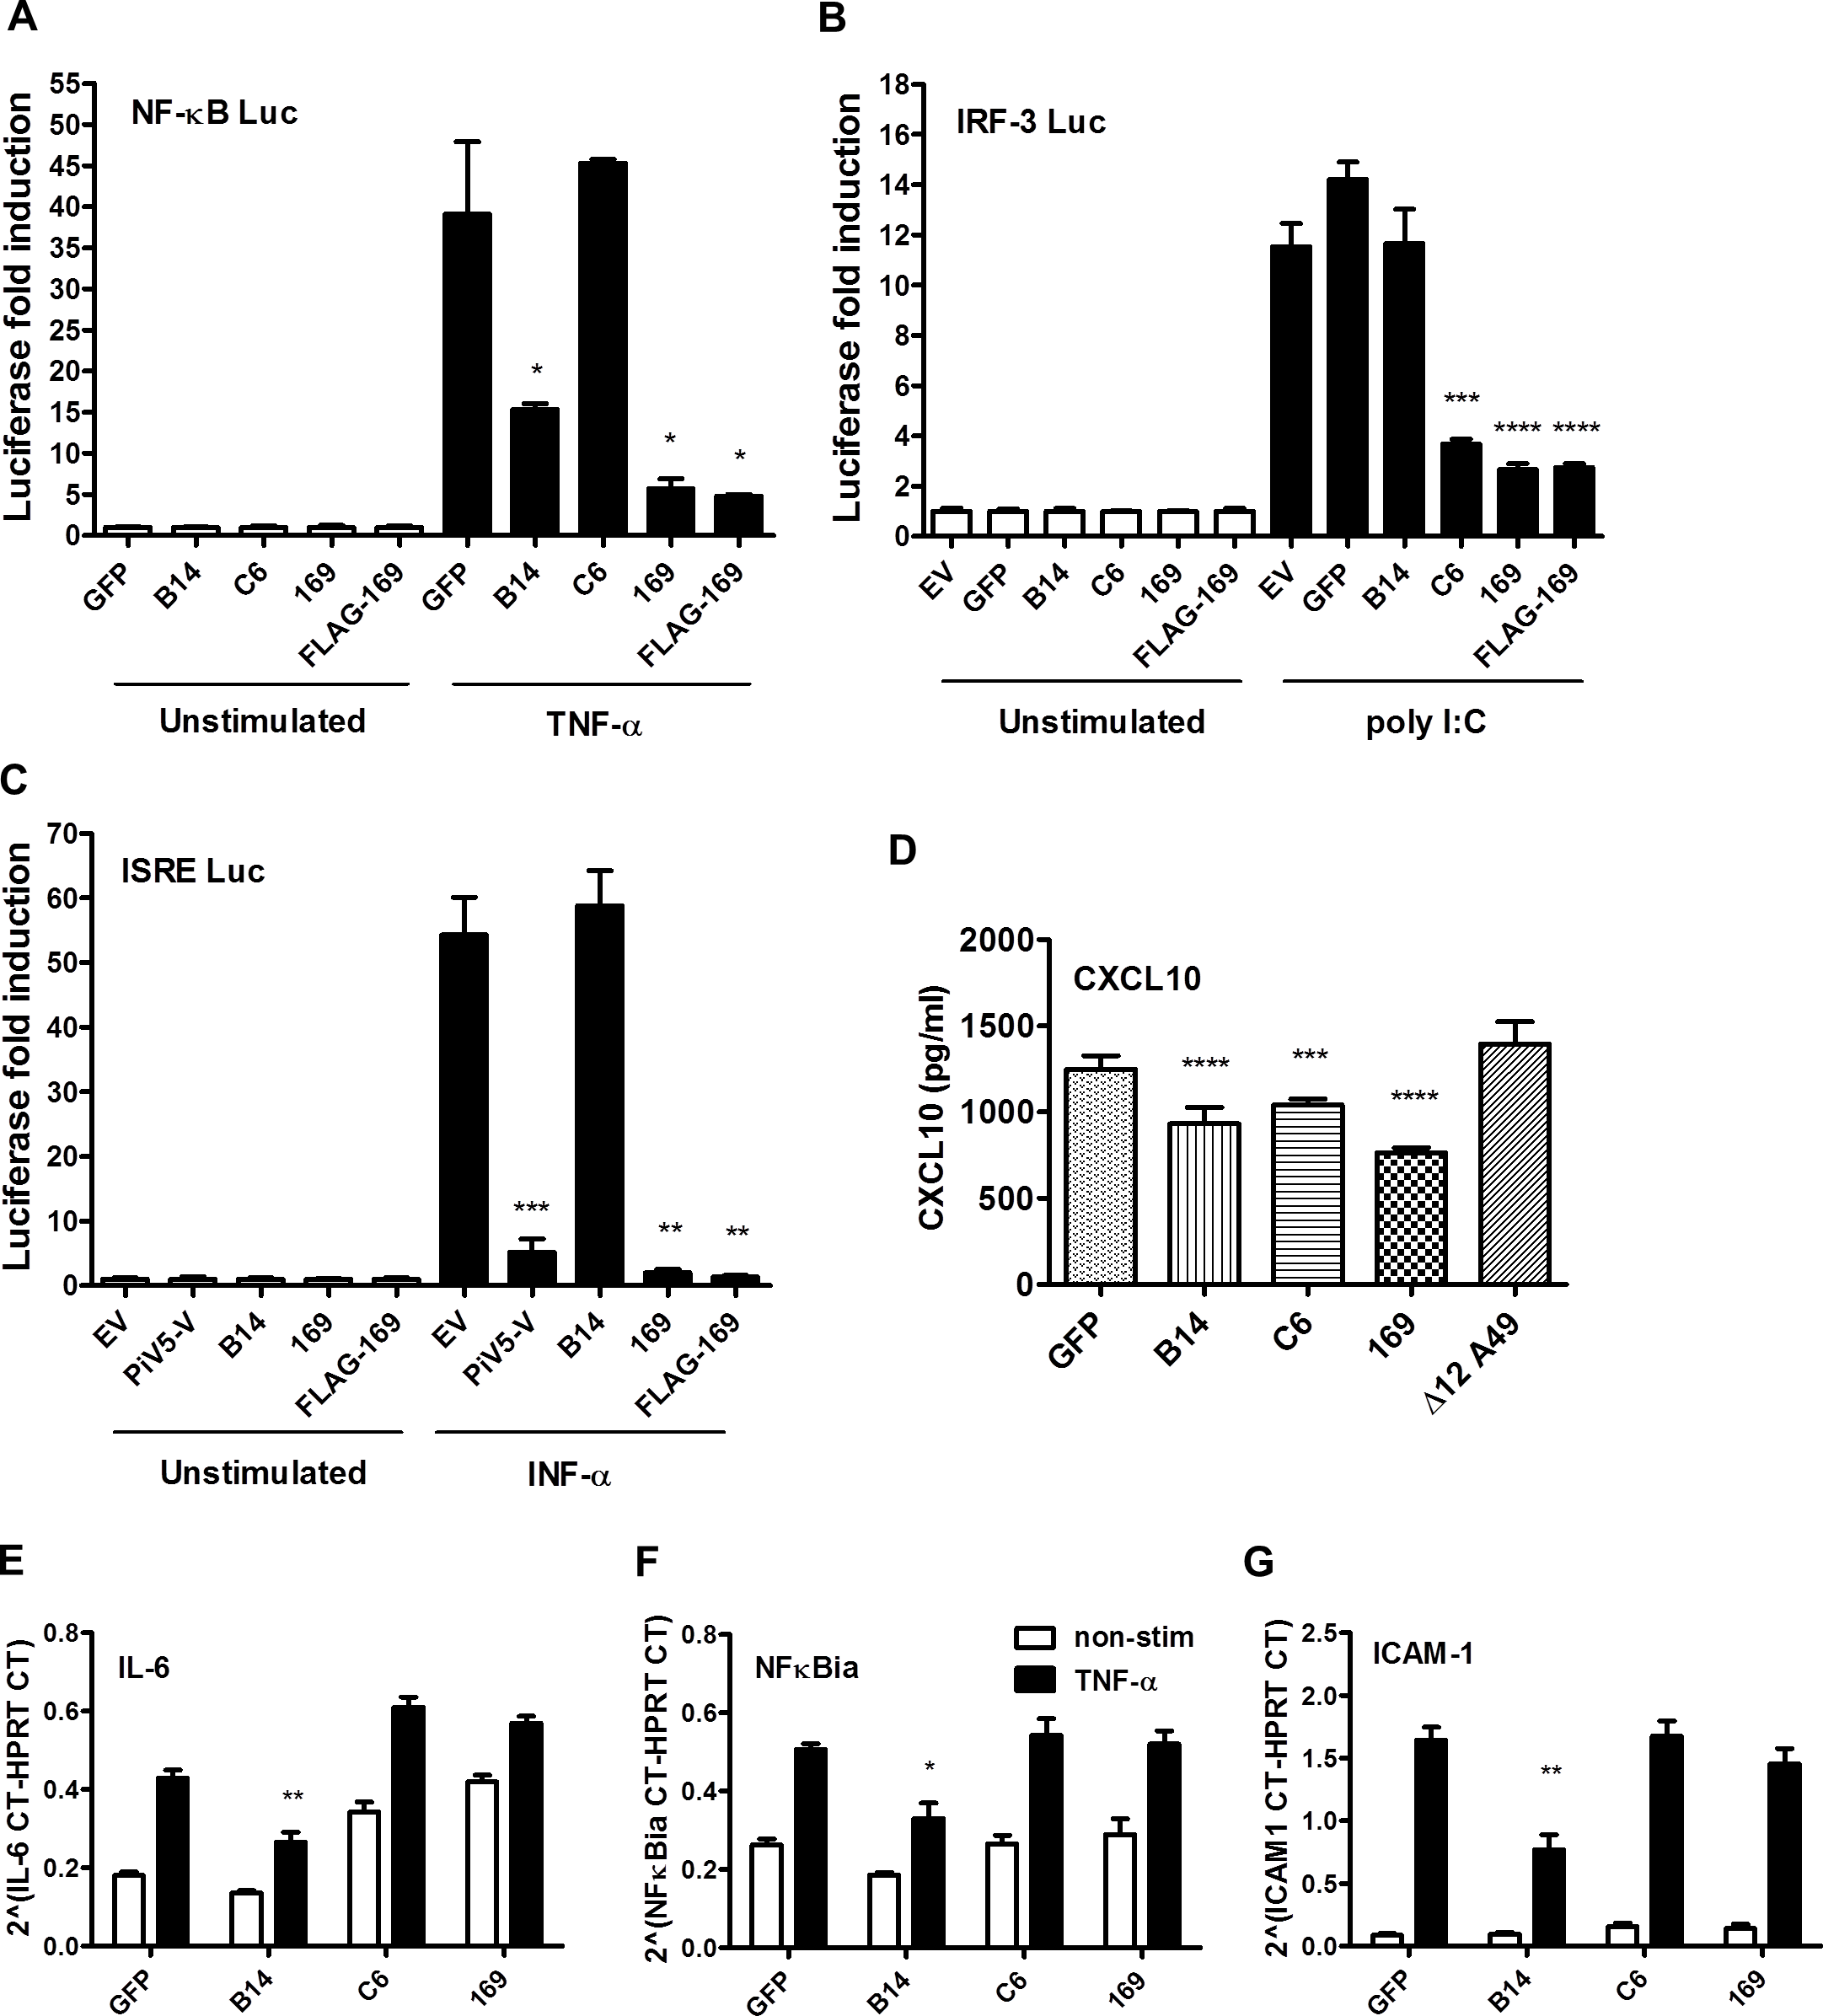 Protein 169 inhibits protein expression after activation of several innate immune signaling pathways.